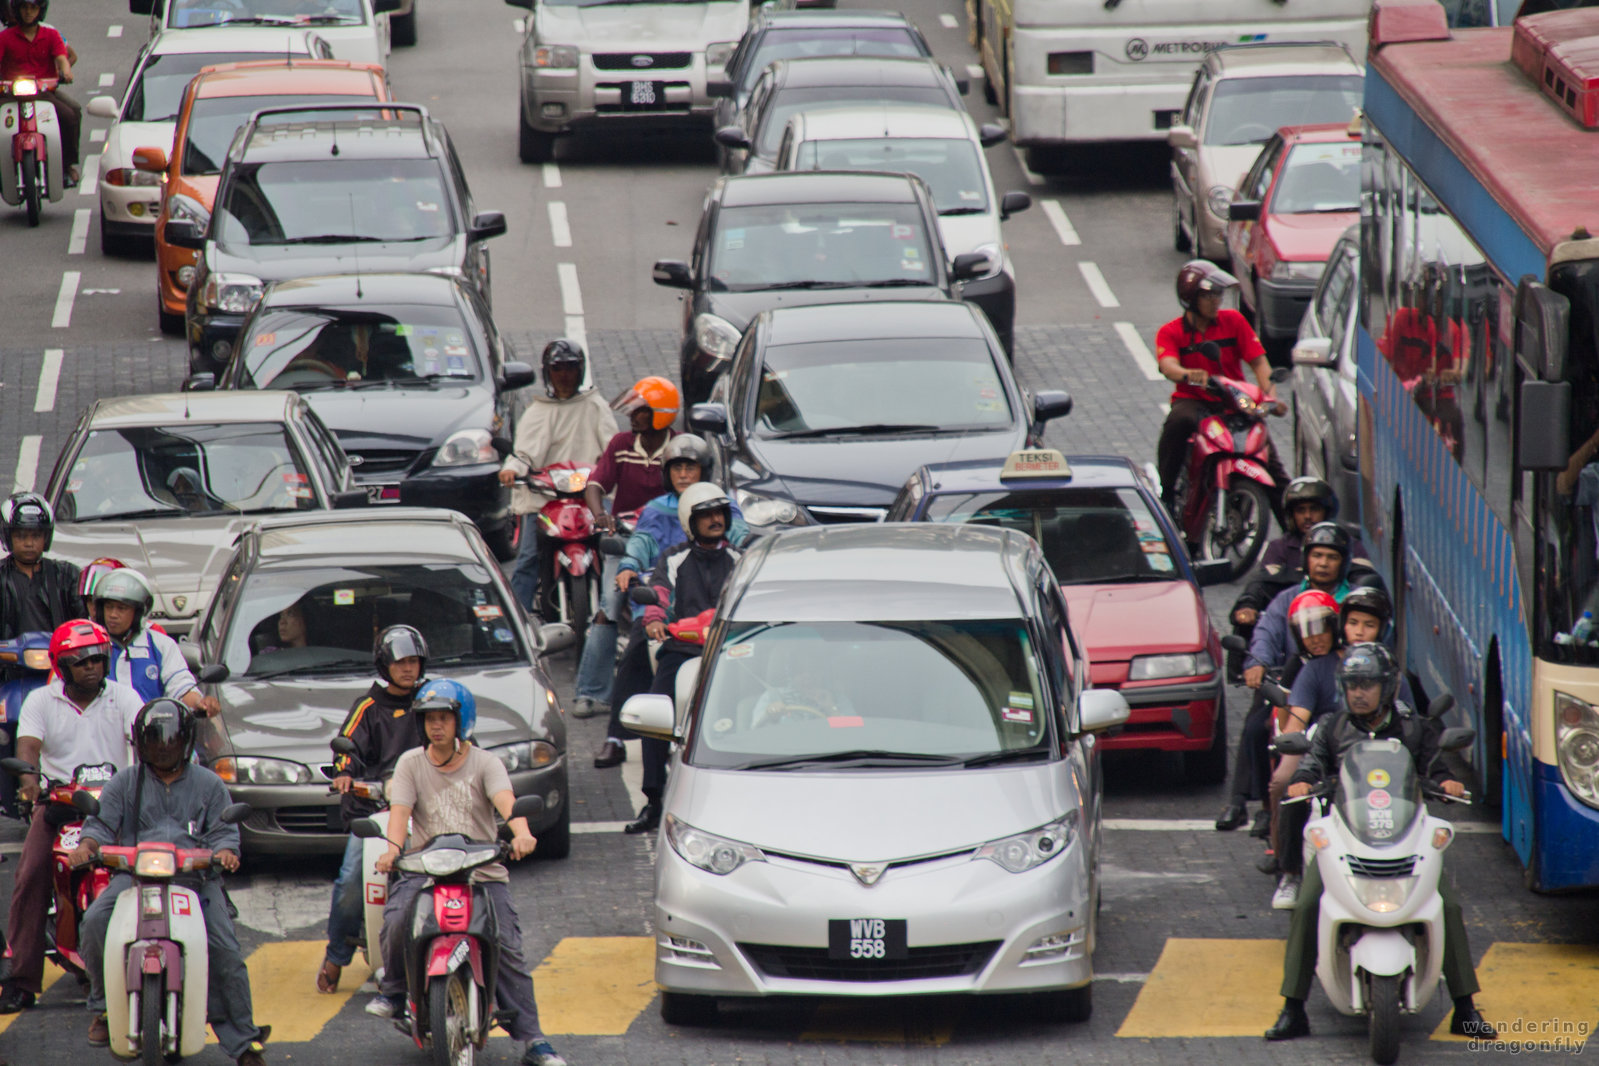 Lanes are for guidance only -- car, motorbike, traffic jam